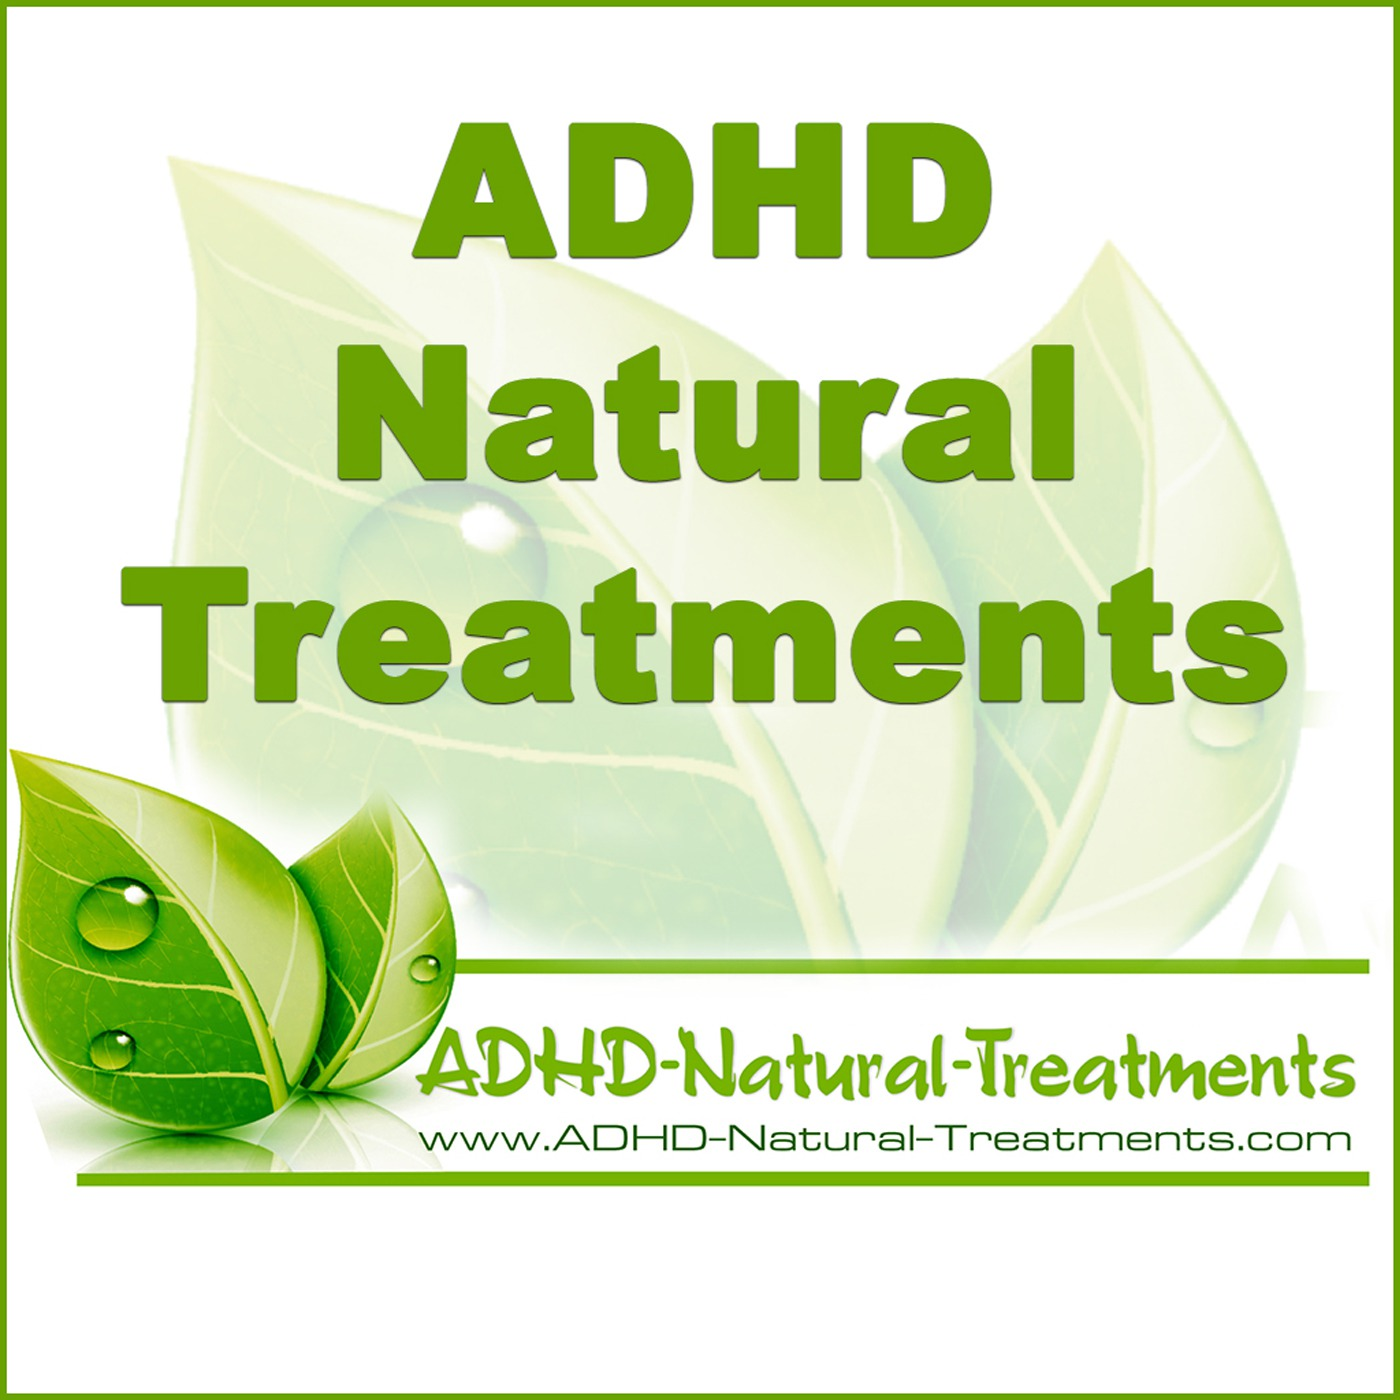 ADHD Natural Treatments